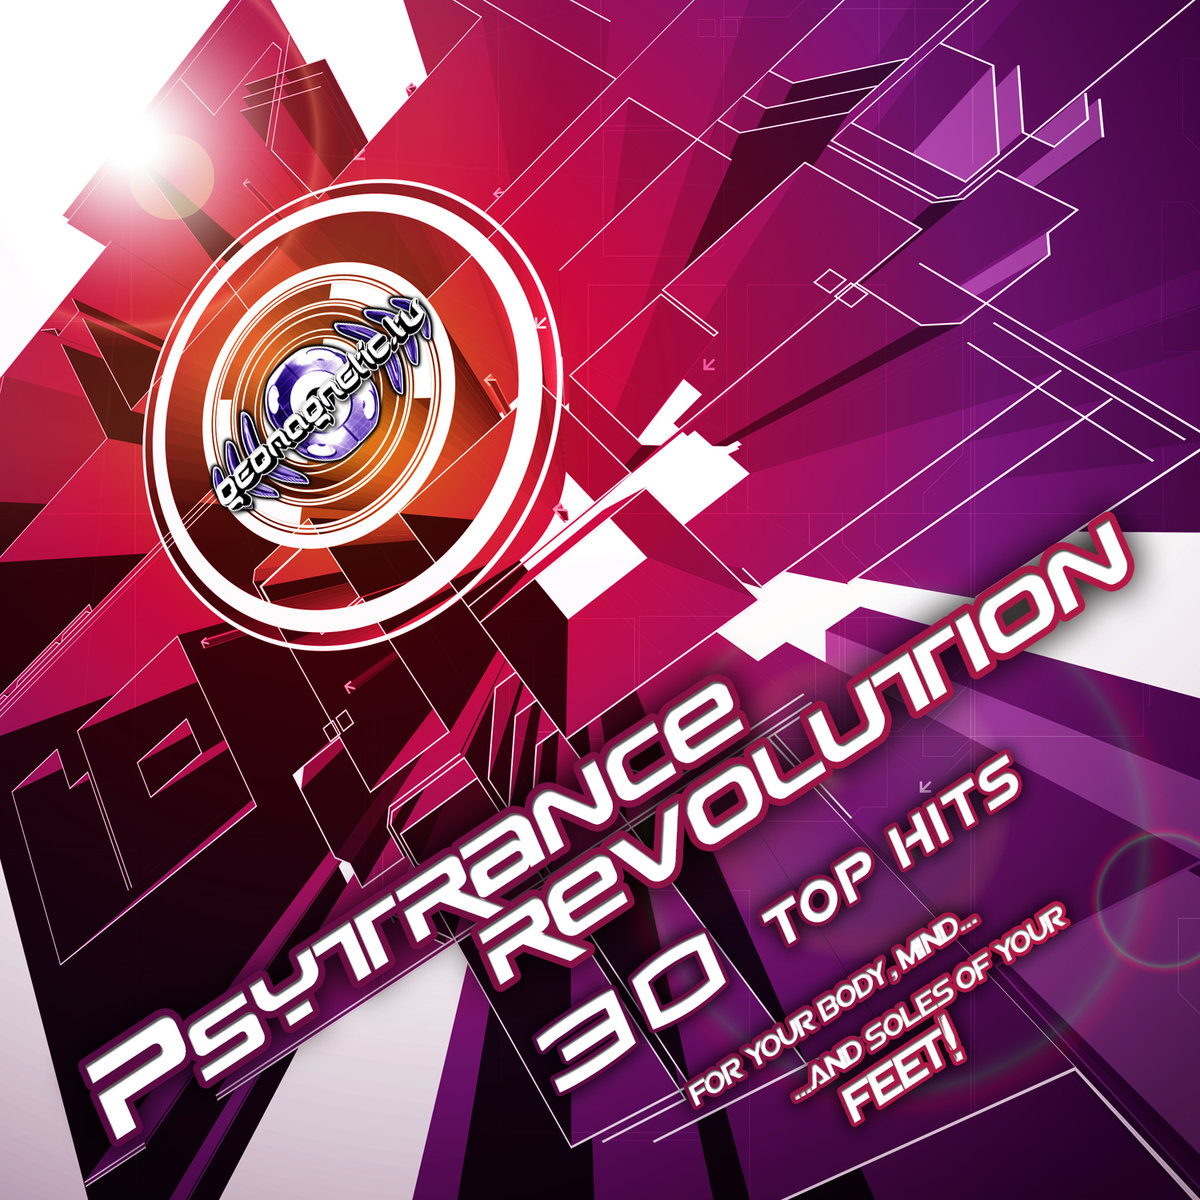 Mind Portal - Energy Split @ 'Various Artists - Psytrance Revolution (30 Top Hits)' album (electronic, goa)